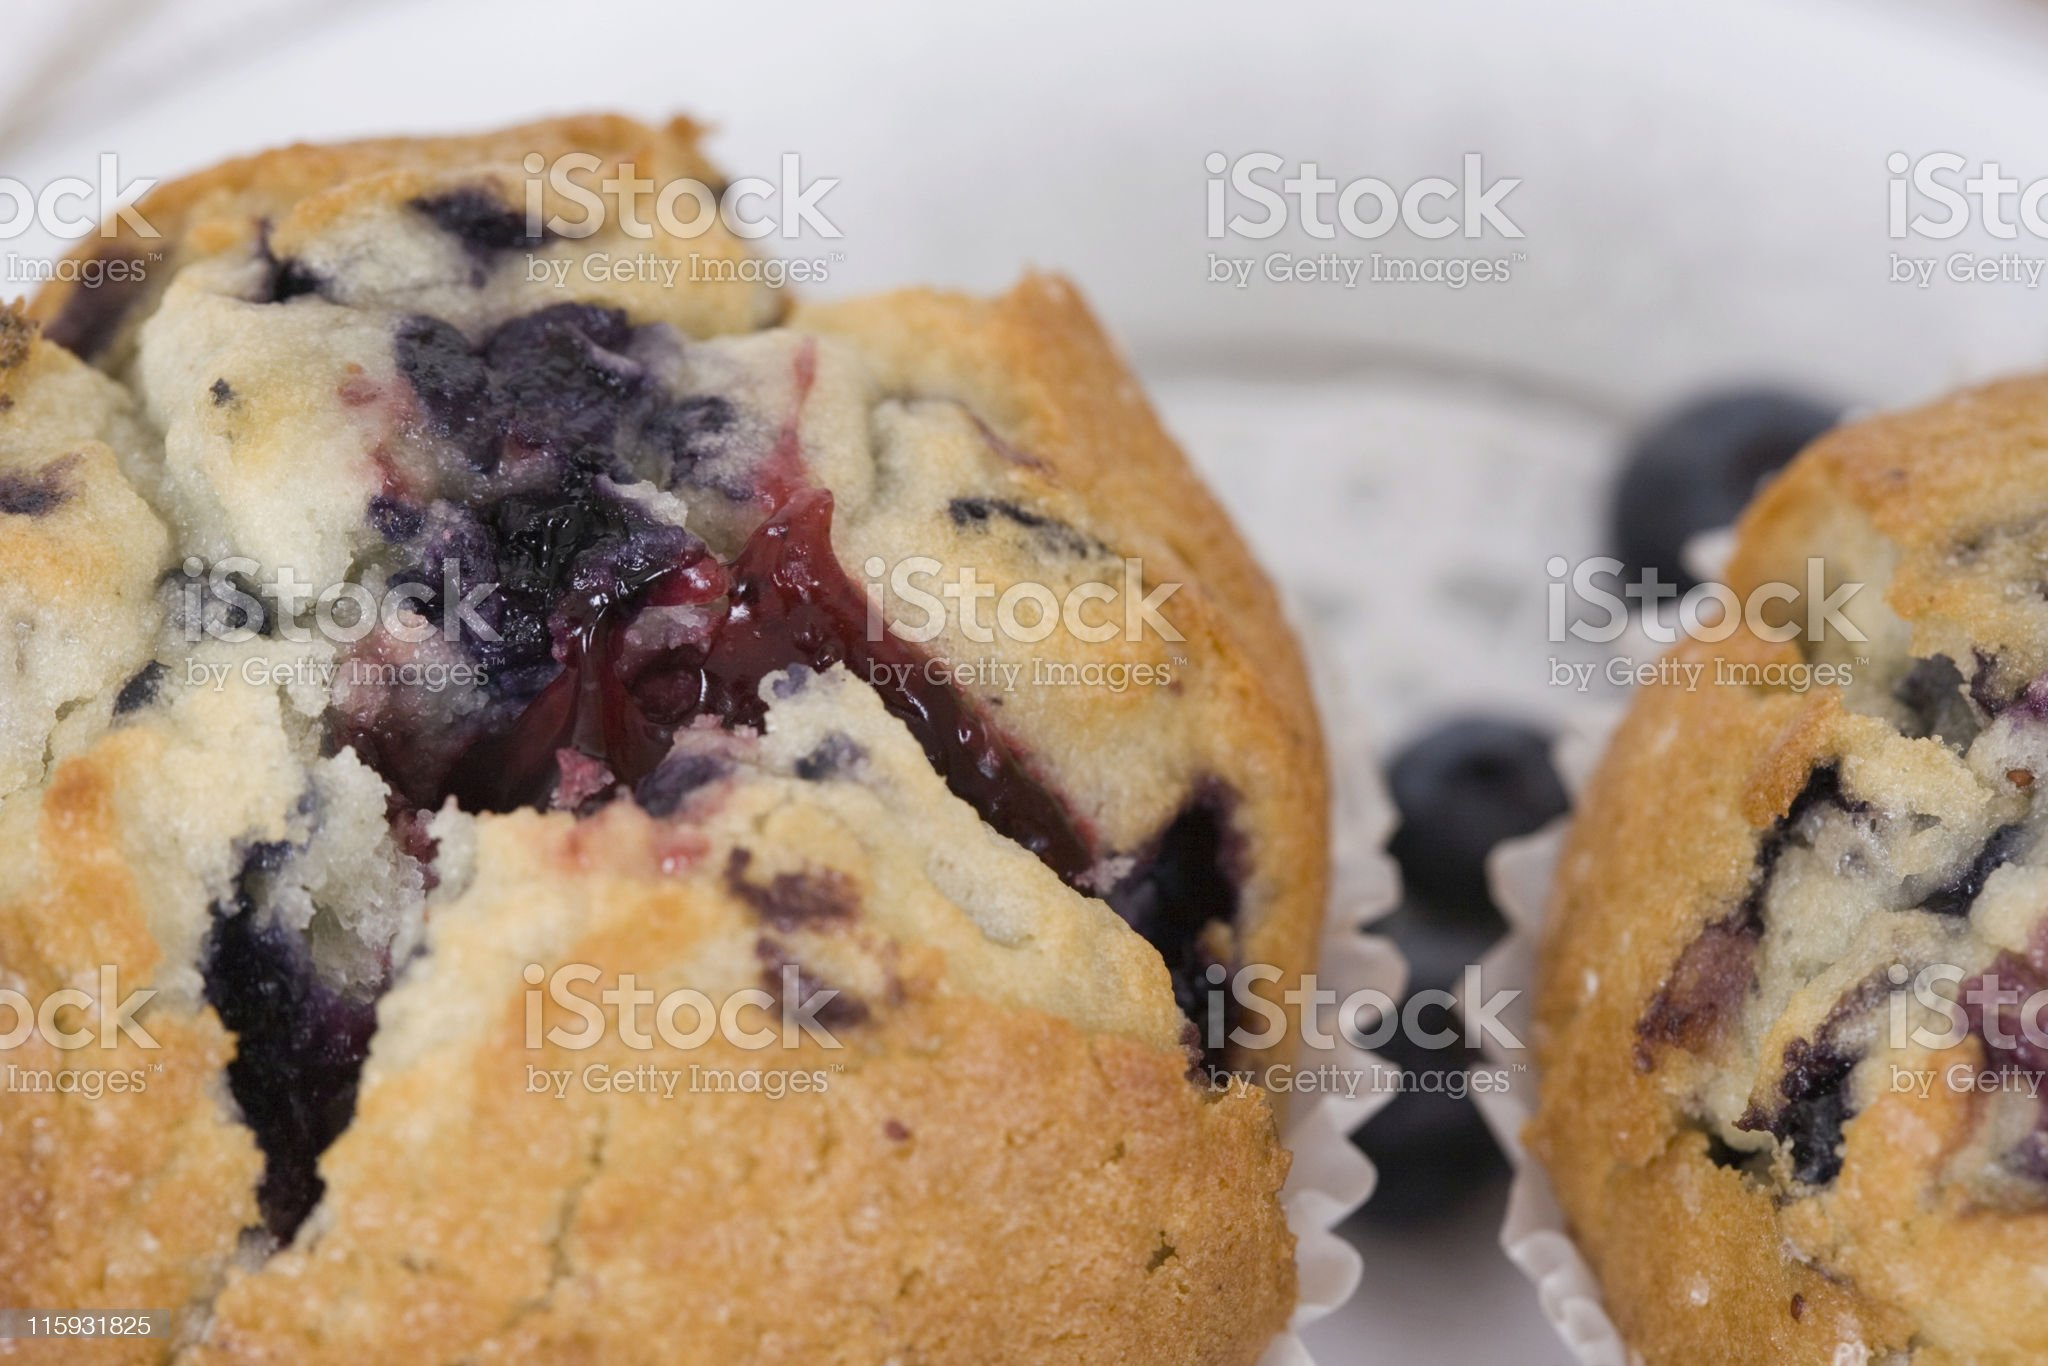 Blueberry Muffin Close-Up royalty-free stock photo